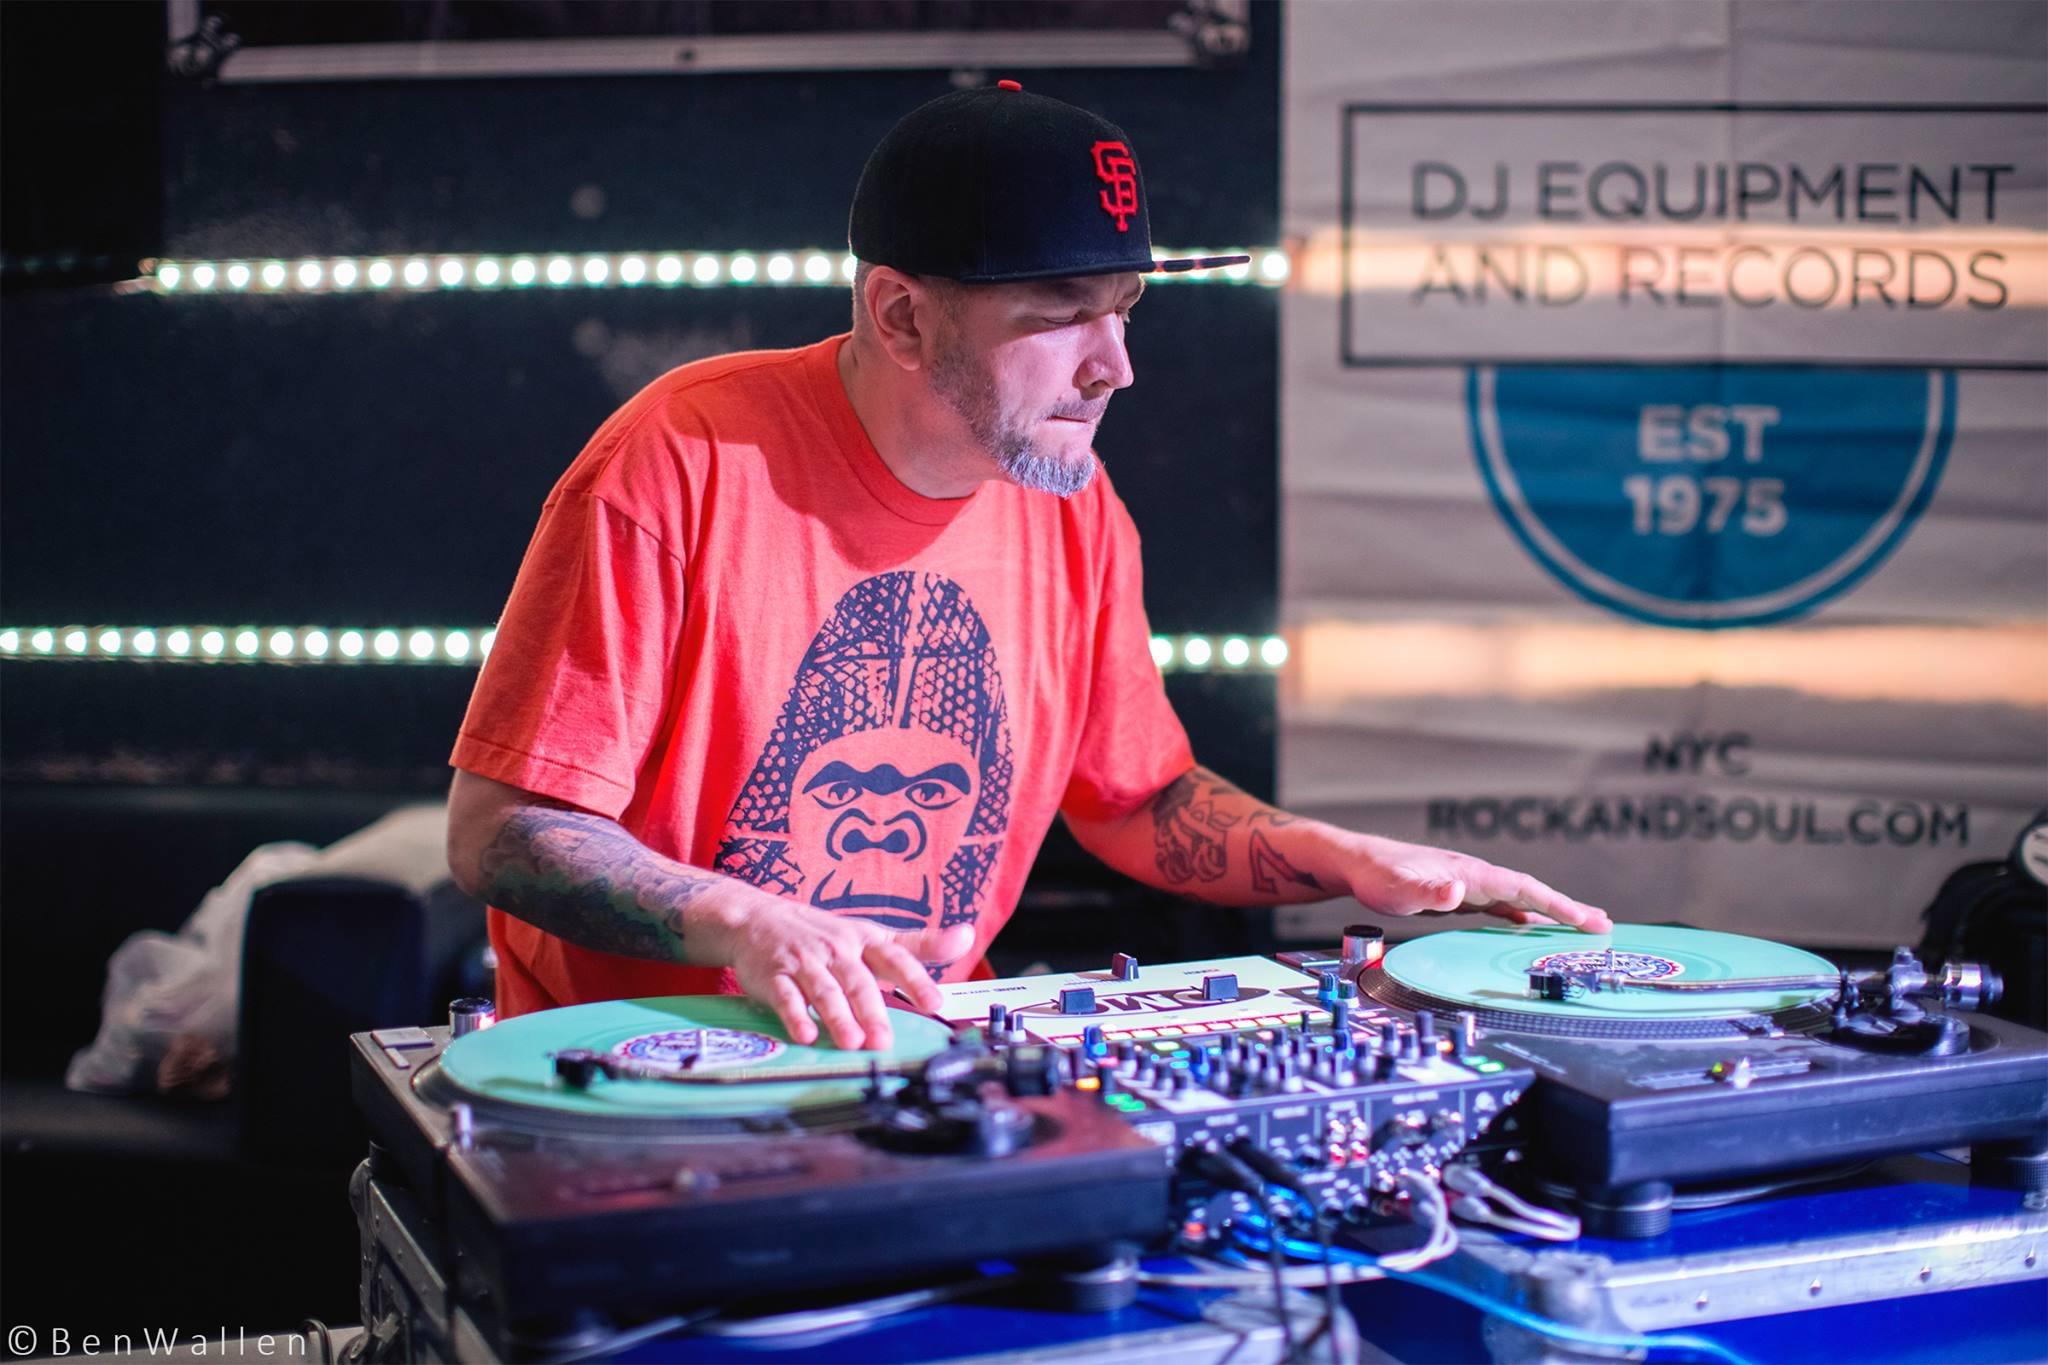 2017 DC DMC dj battle Finalist. It had been a while the nerves were flowin. Shout out to Ben for the pic.